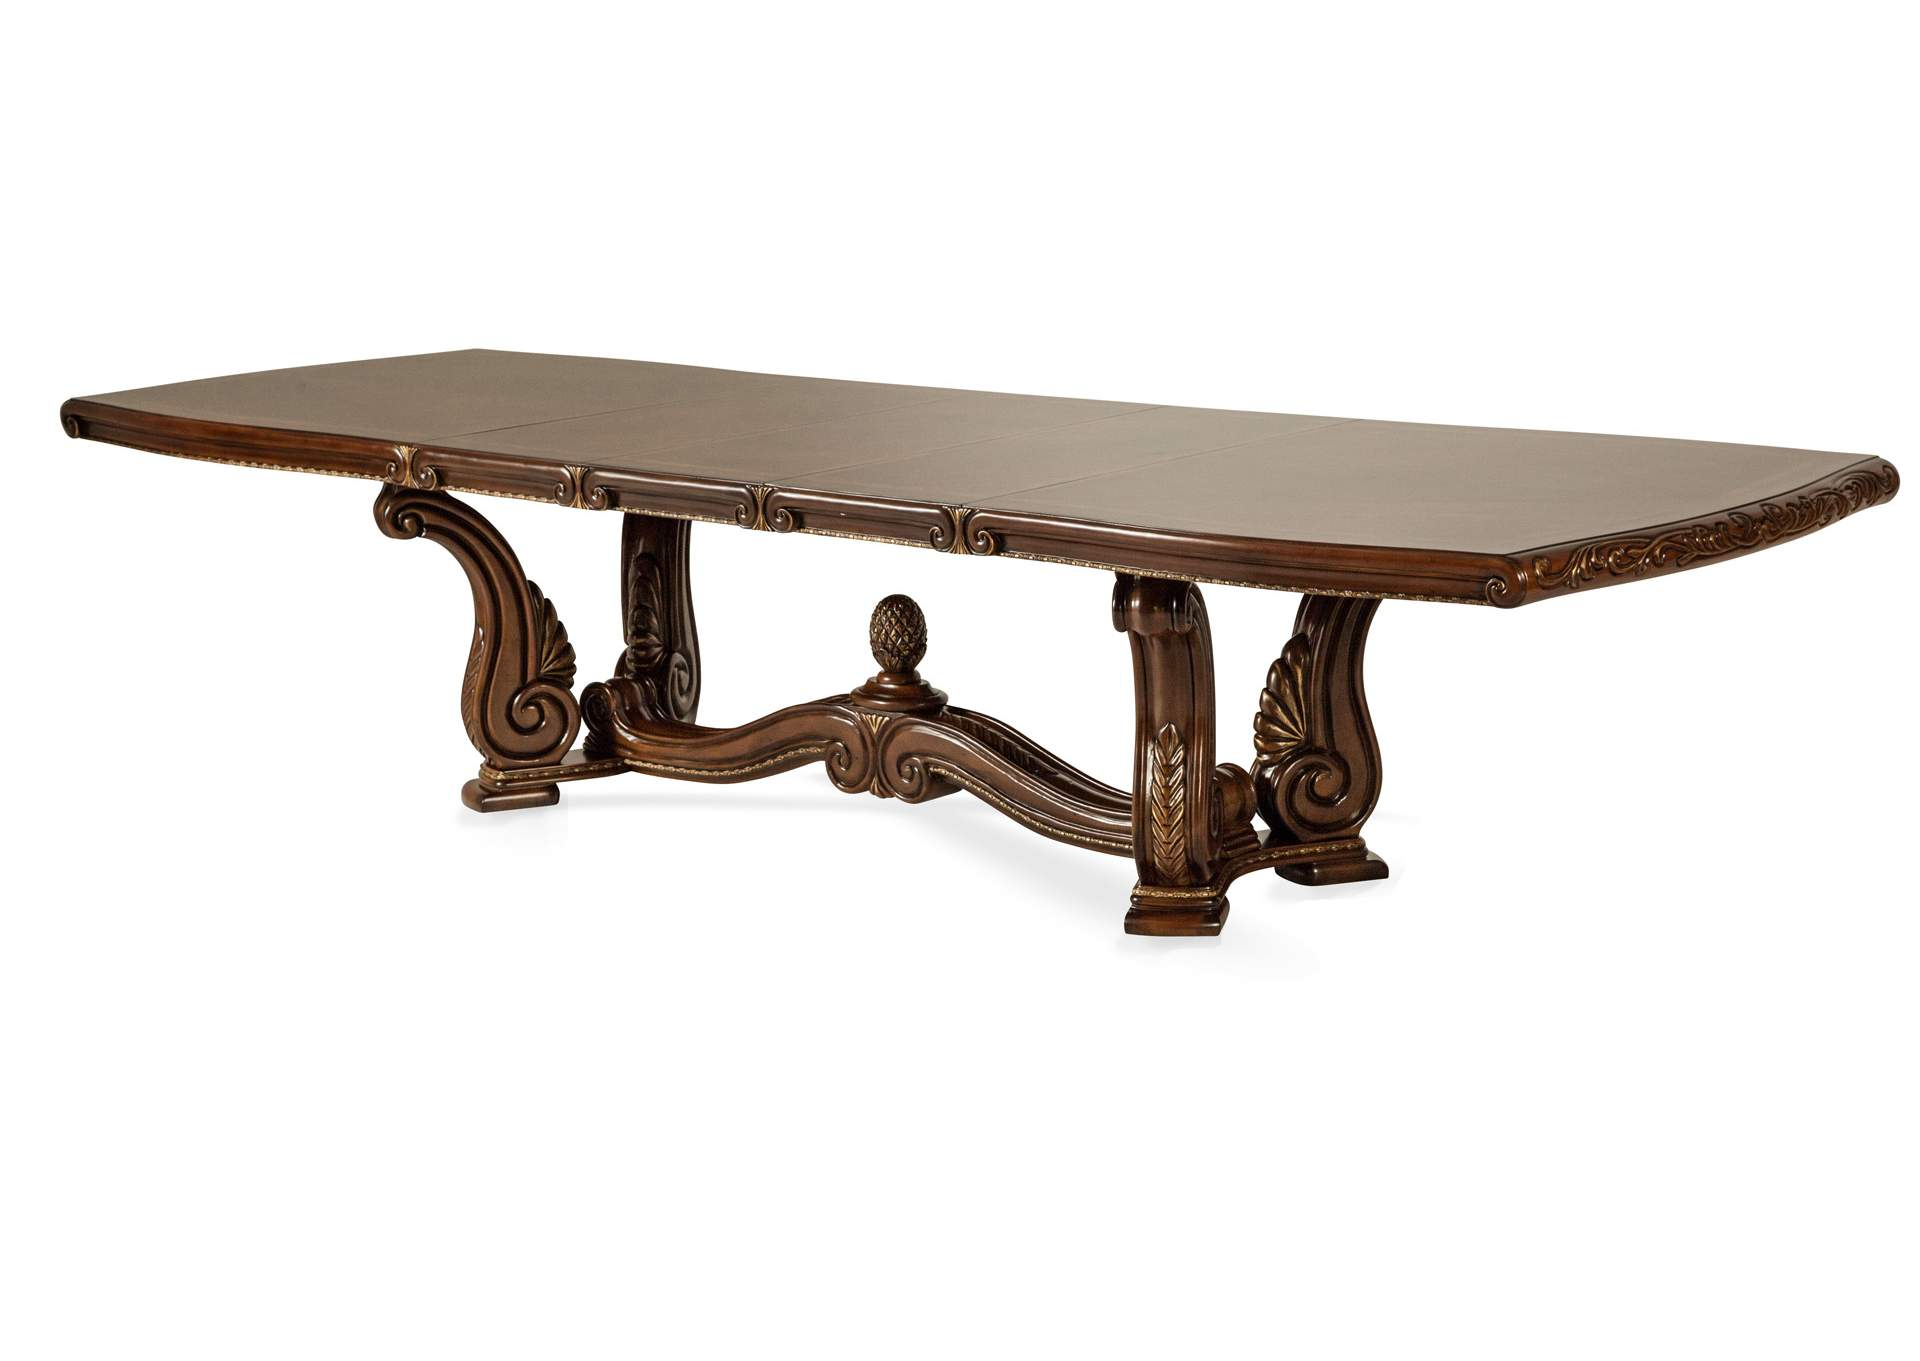 Genial Oppulente Sienna Spice Rectangular Dining Table (2 Pc),AICO